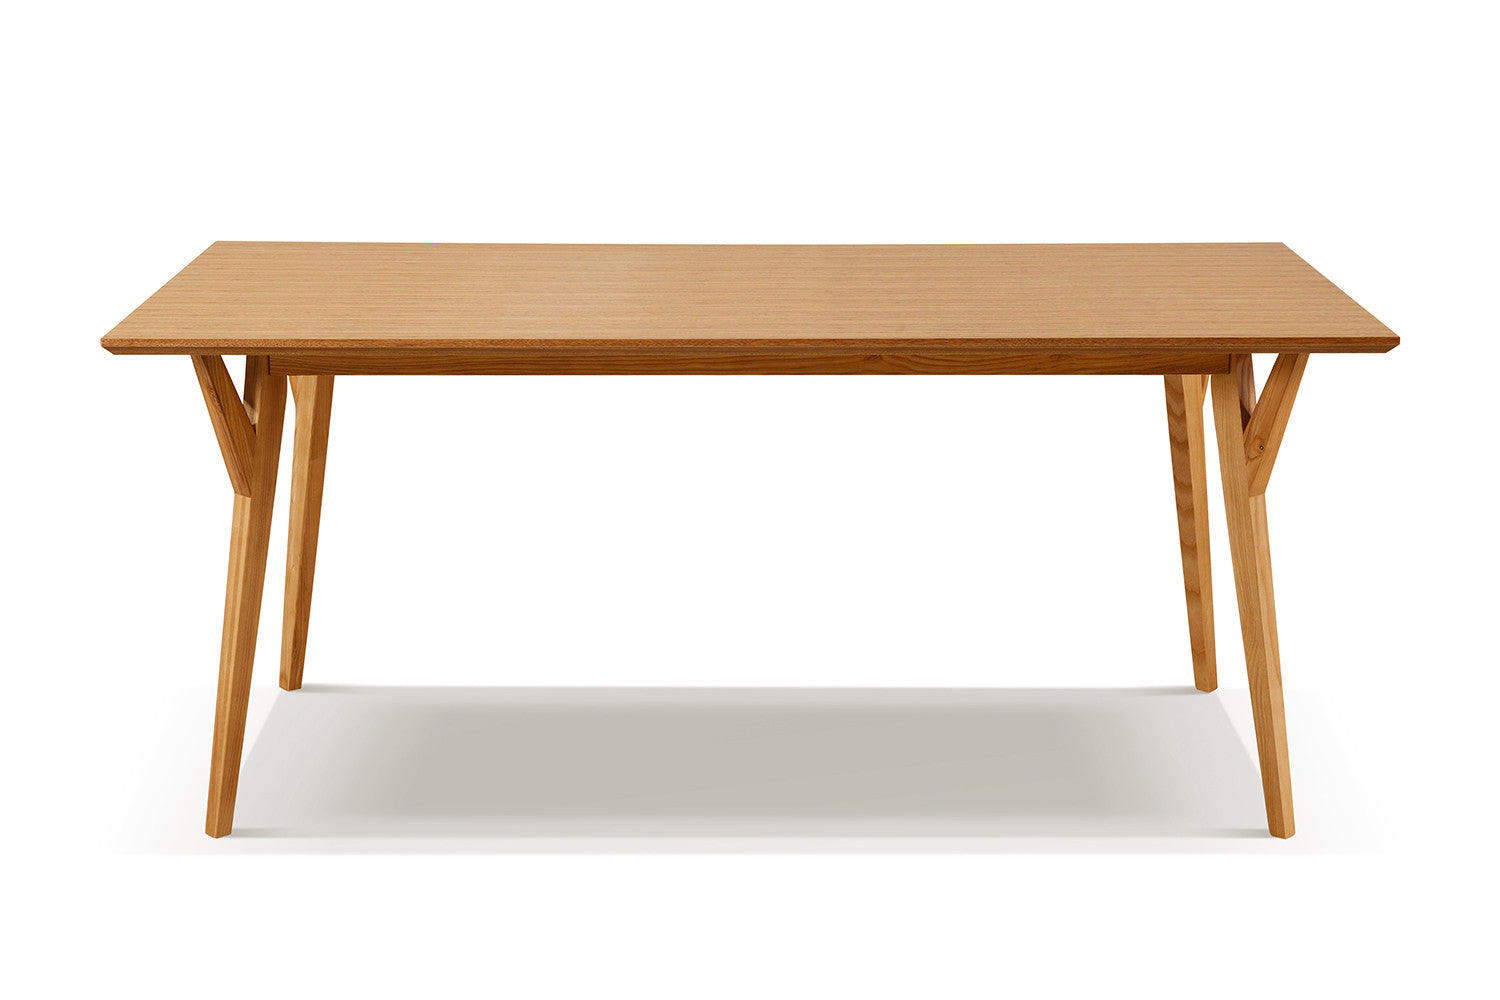 Table salle a manger scandinave for Table salle a manger modulable